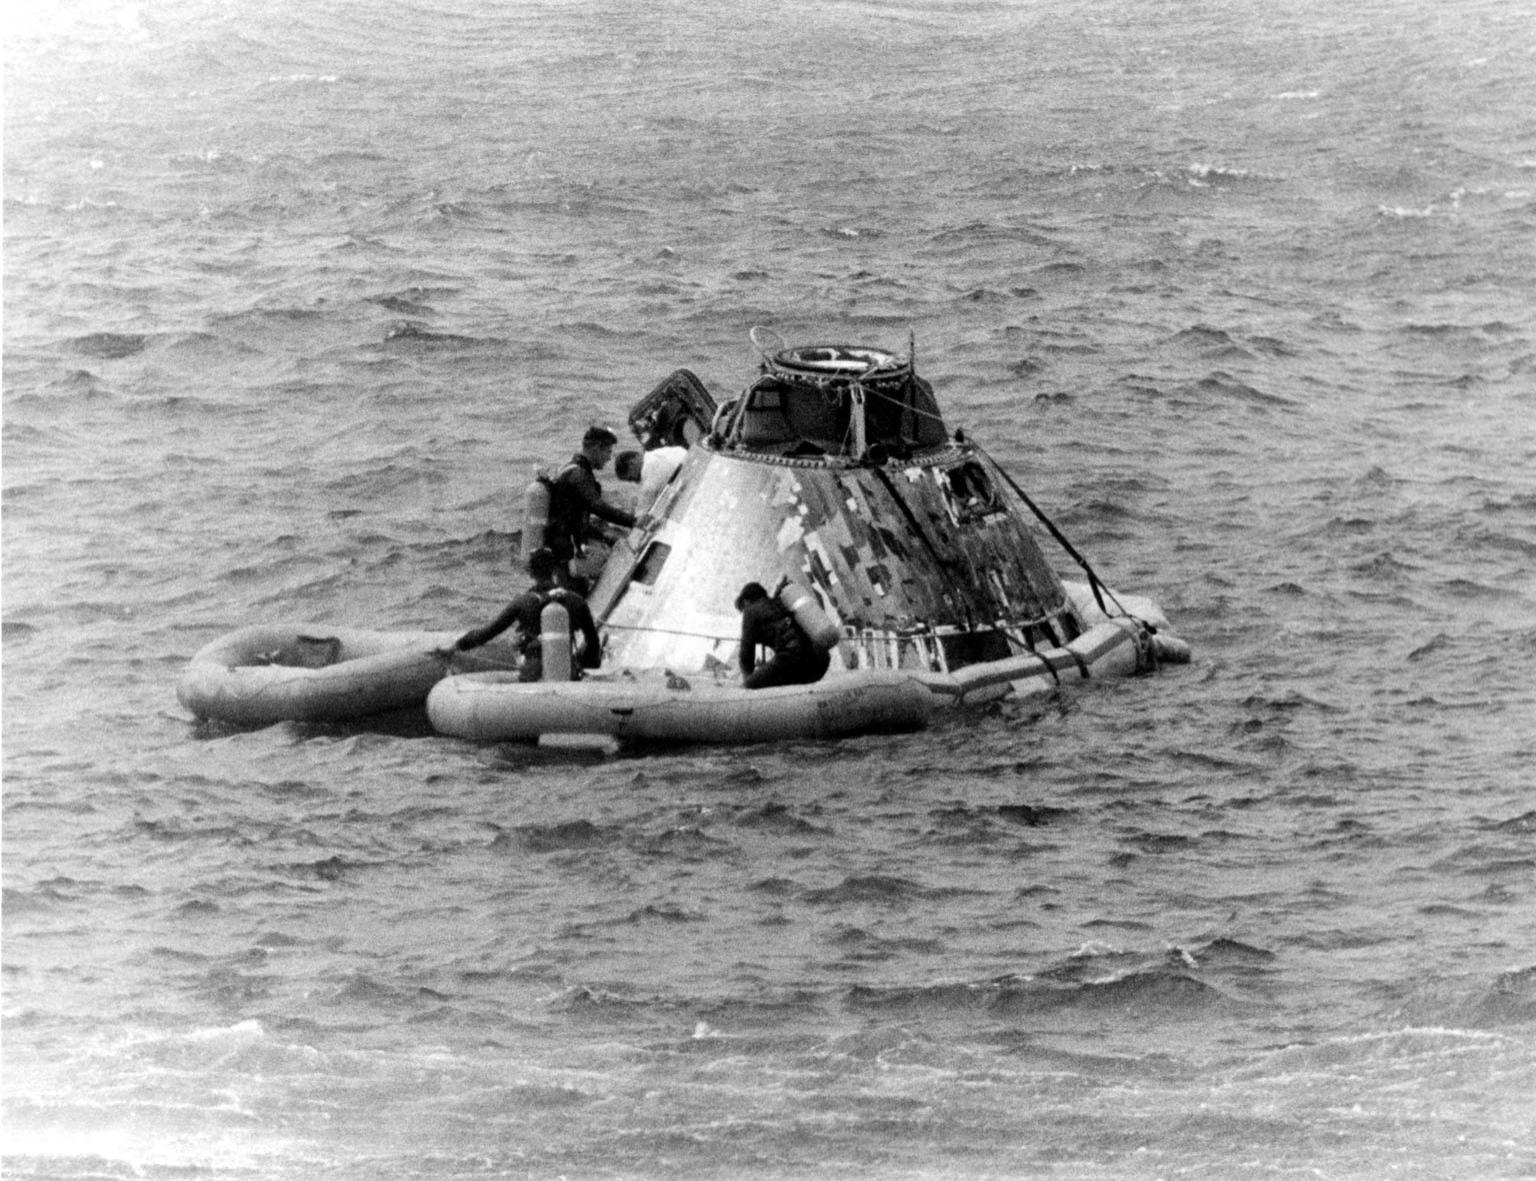 KENNEDY SPACE CENTER, FLA. -- Pararescueman helps Apollo 9 Command Module Pilot David R. Scott from the spacecraft today during recovery at completion of the 10-day Earth orbital flight with James A. McDivitt and Russell L. Schweickart, still in the spacecraft. The astronauts splashed down less than five miles from the USS Guadalcanal, prime recovery ship, at the beginning of their 152nd revolution. During the highly successful flight, they extensively tested the lunar module spacecraft, paving the way for a similar one to carry Americans to the Moon later this year. They were lalunched March 3 by an Apollo/Saturn V space vehicle from the Kennedy Space Center at the start of NASA's third manned mission using an Apollo spacecraft.